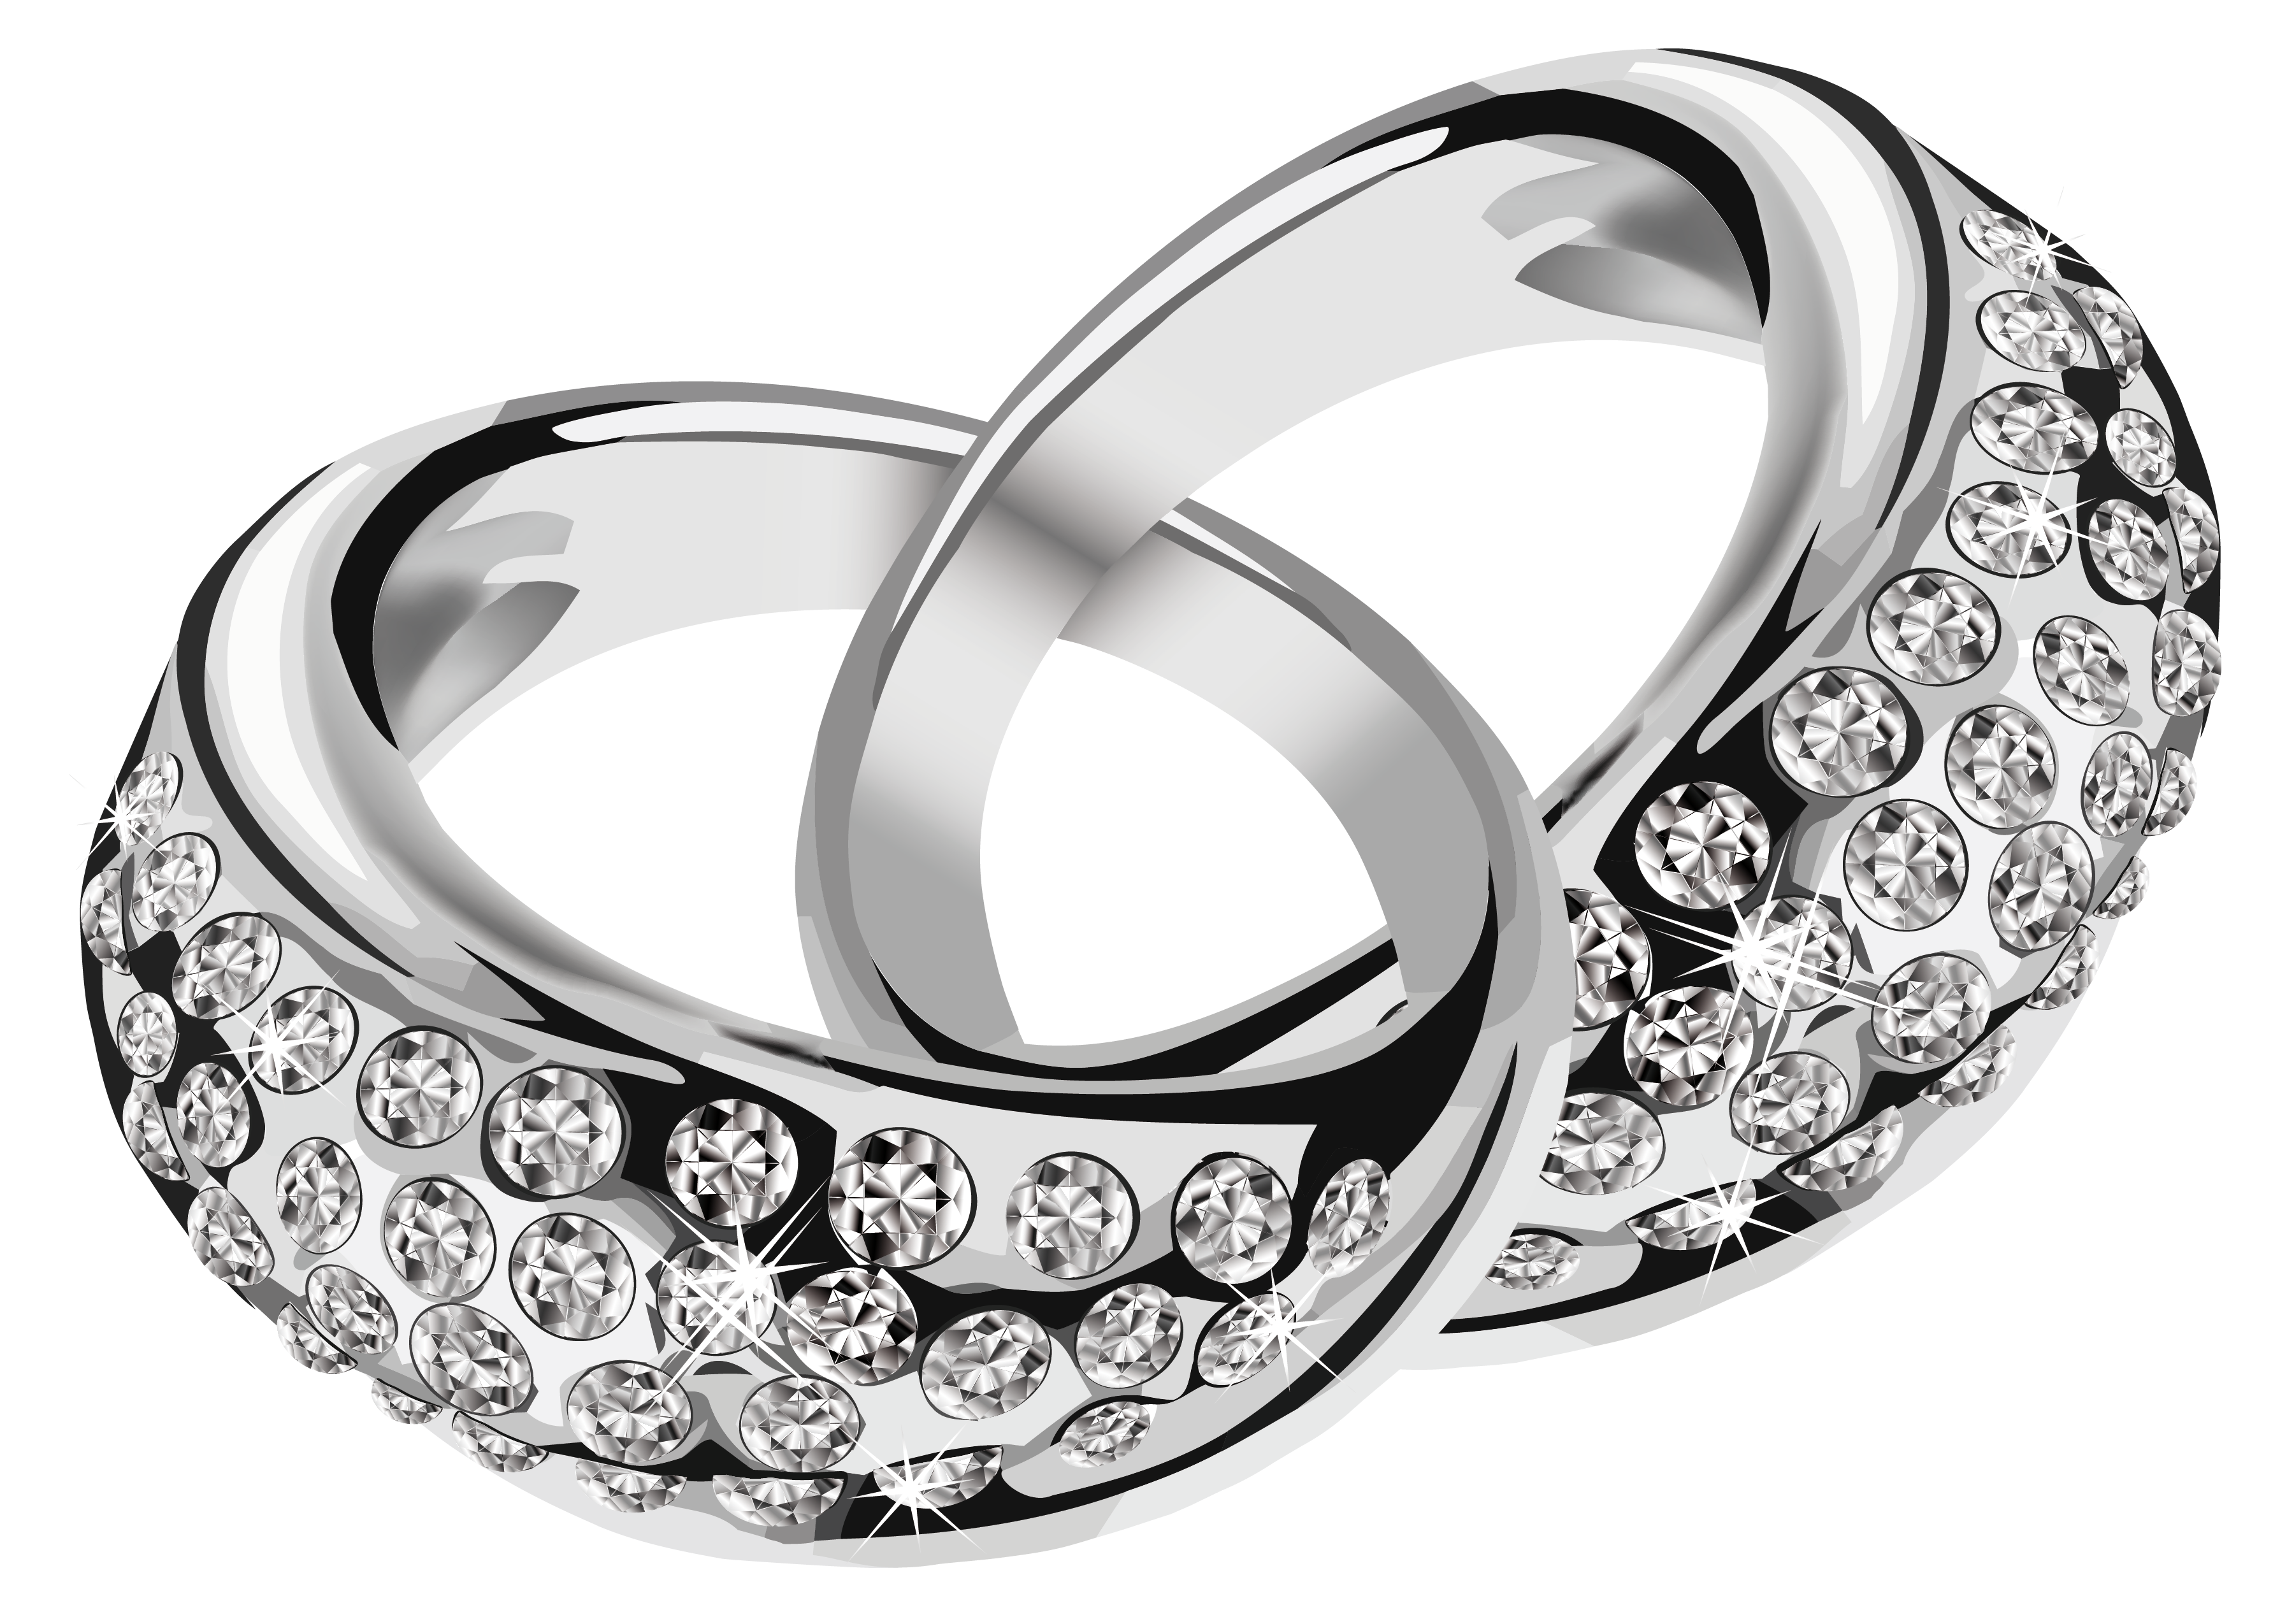 Engagement clipart shiny ring. Silver rings with diamonds